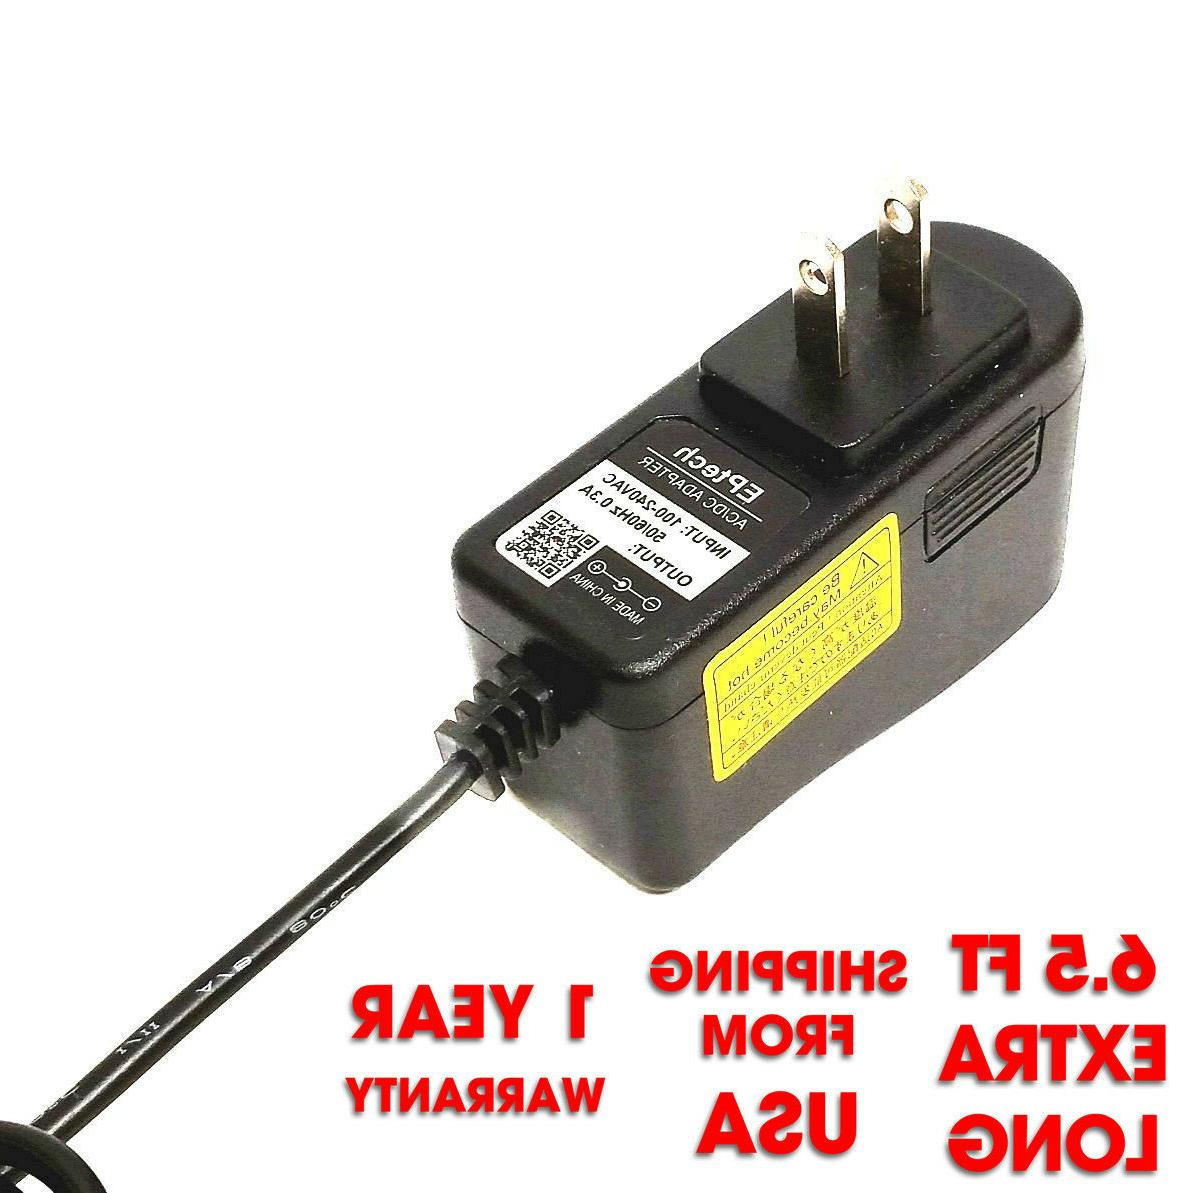 Adapter For Ryobi HP108L 8v HP108L Lithium-Ion Cordless Dril